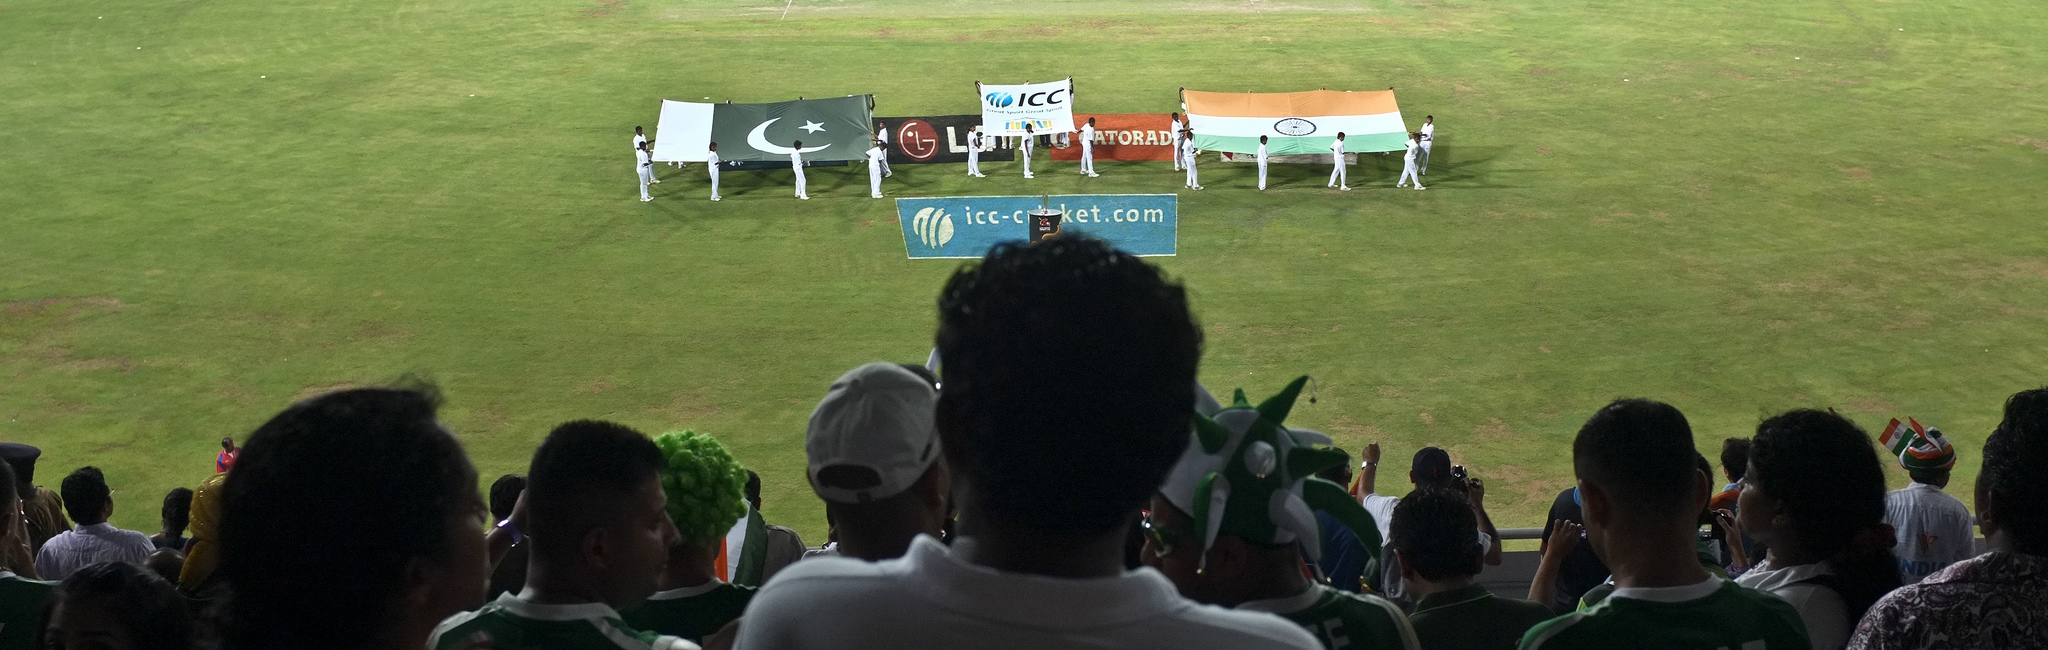 Another India-Pakistan Match: Are We Supposed to Boycott It or Thump Our Chests?